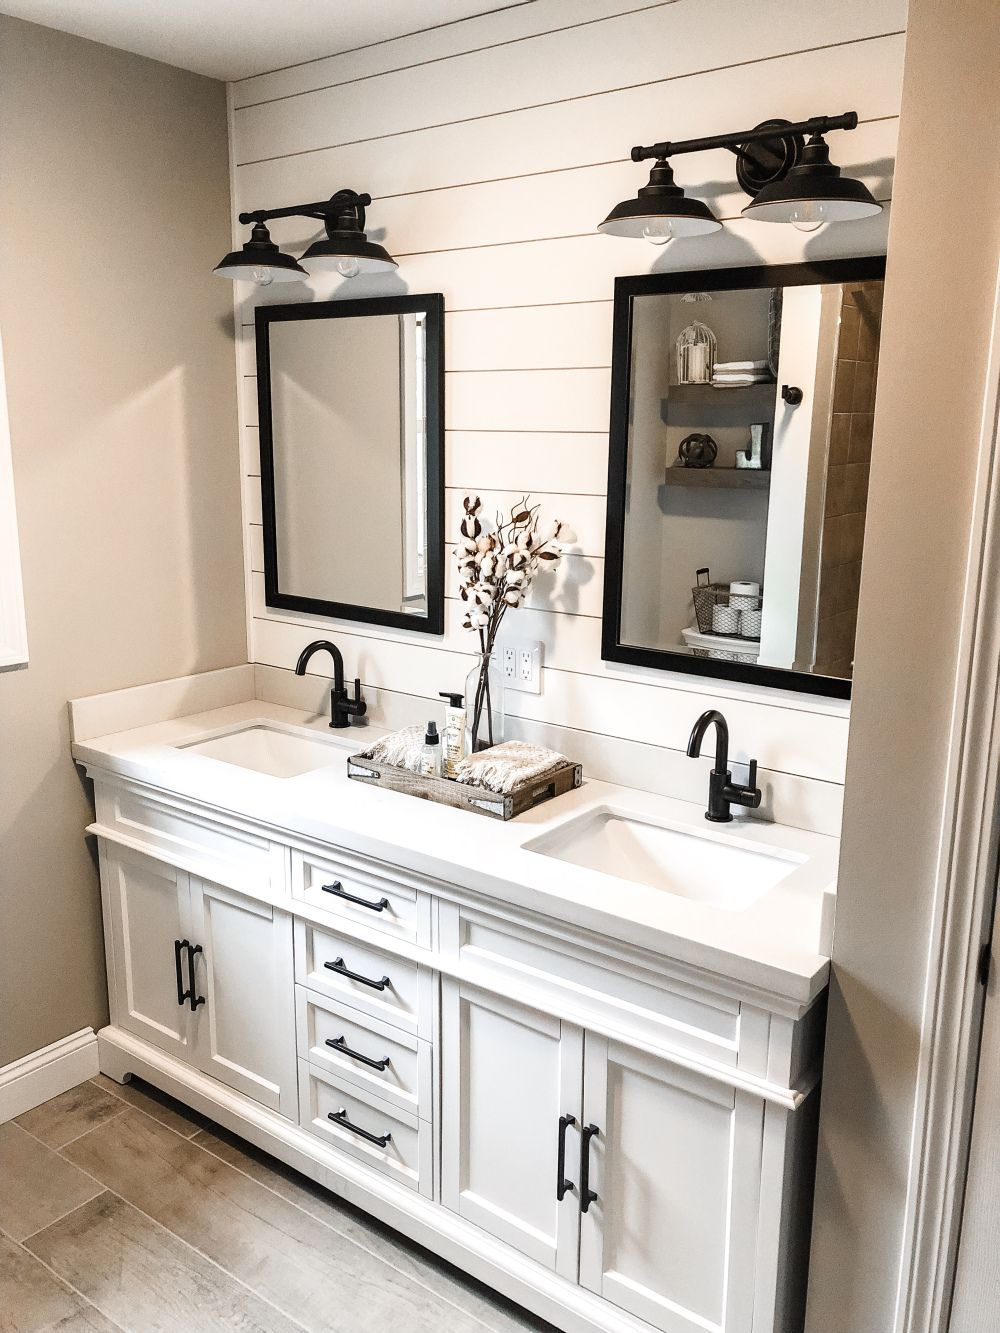 Modern Farmhouse Bathroom Remodel In 2020 Modern Farmhouse Bathroom Bathroom Remodel Master Bathrooms Remodel